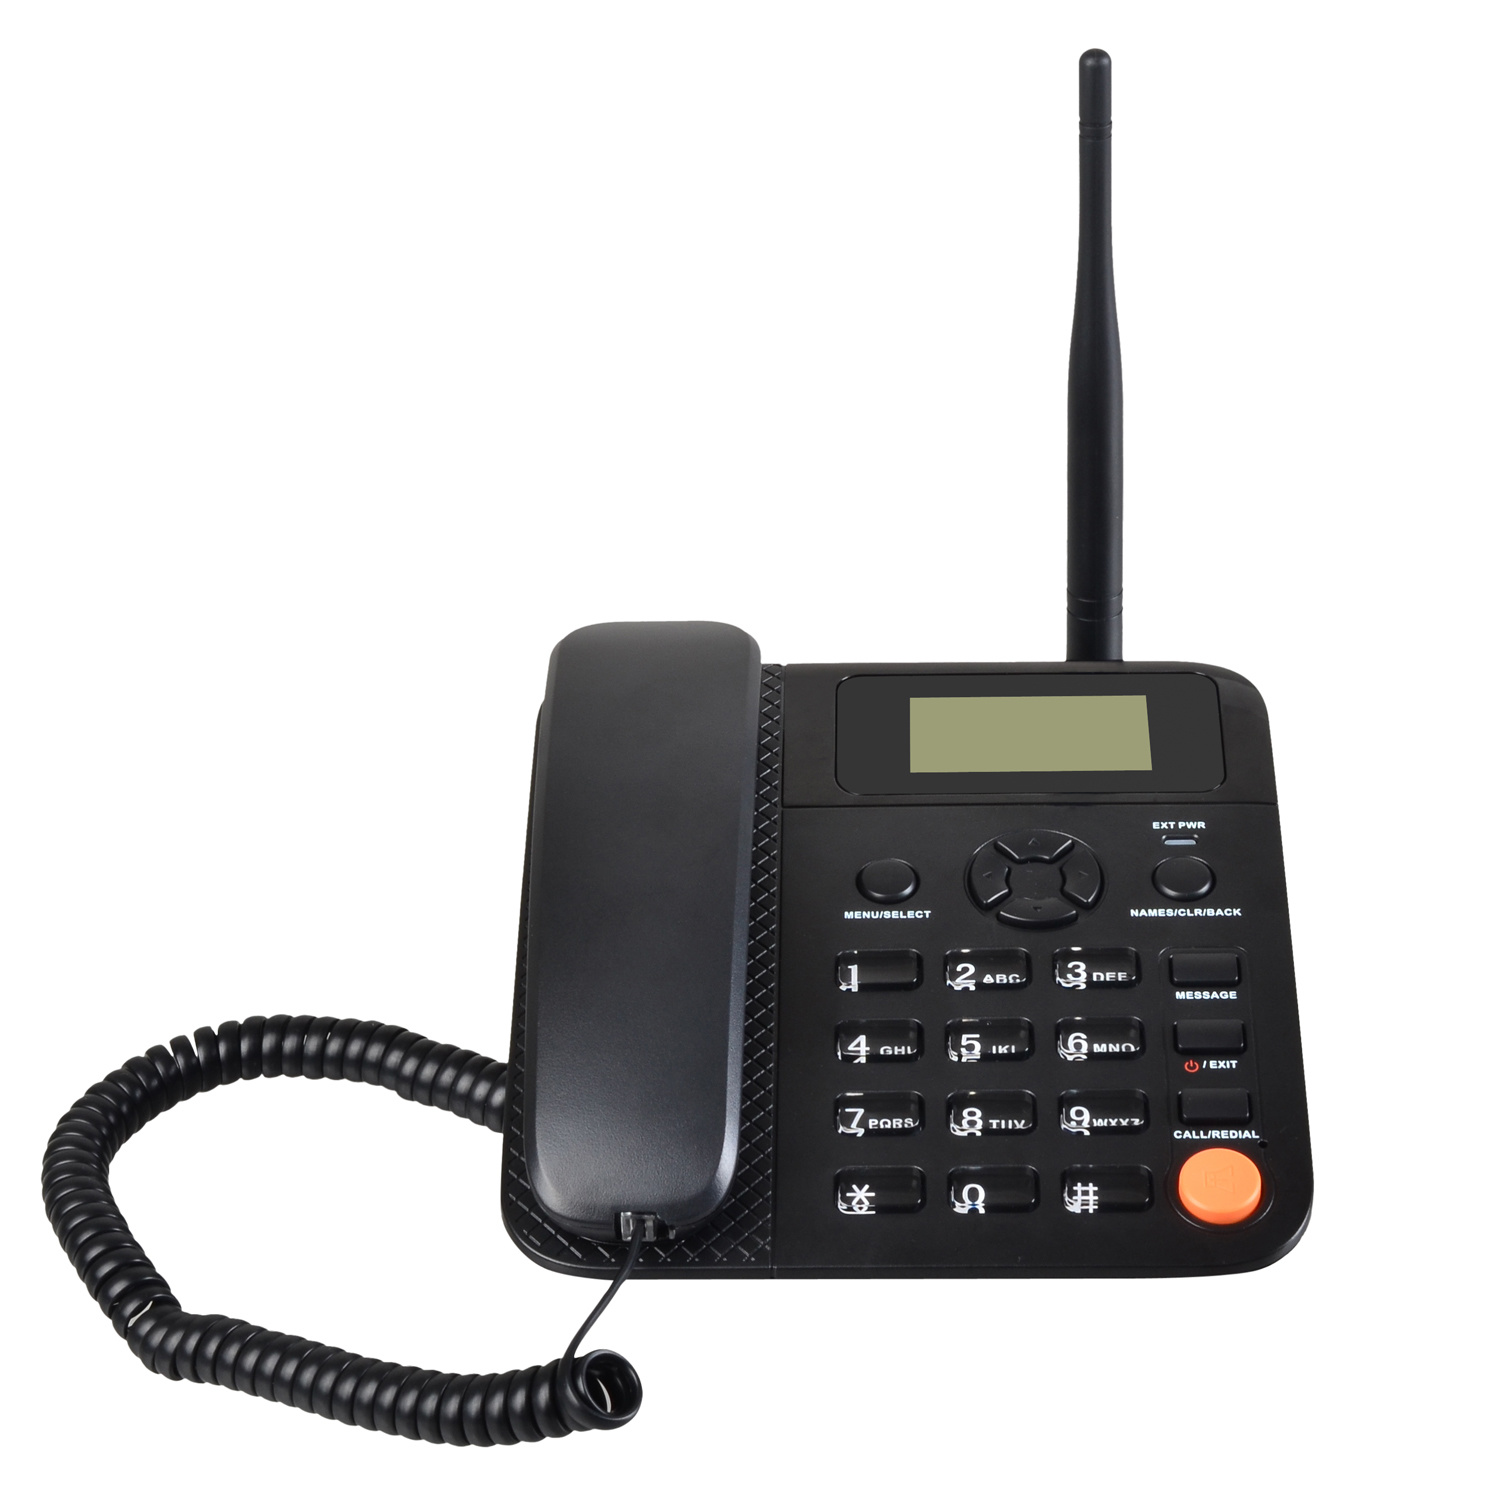 2g Wireless Phone Dual SIM GSM Fwp G659 Supports Strong Reception Antenna